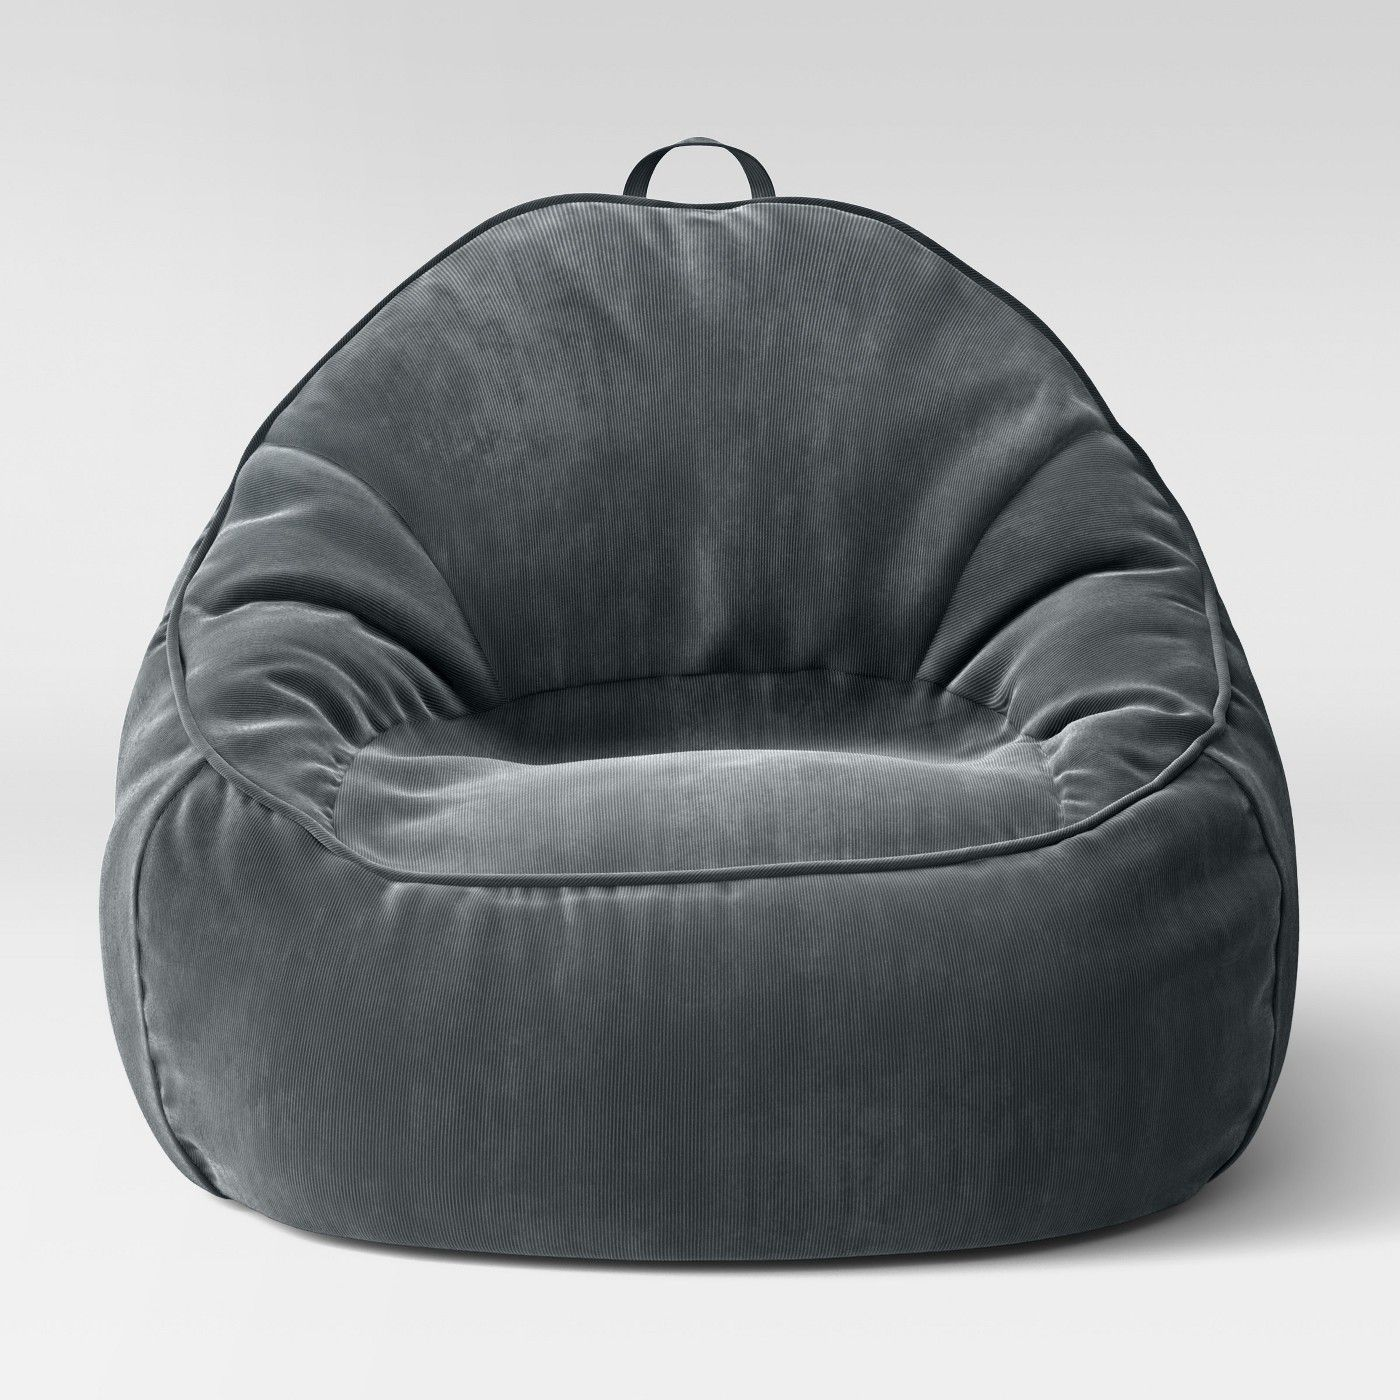 what size bean bag chair do i need bed bath and beyond living room covers 7 best chairs of 2019